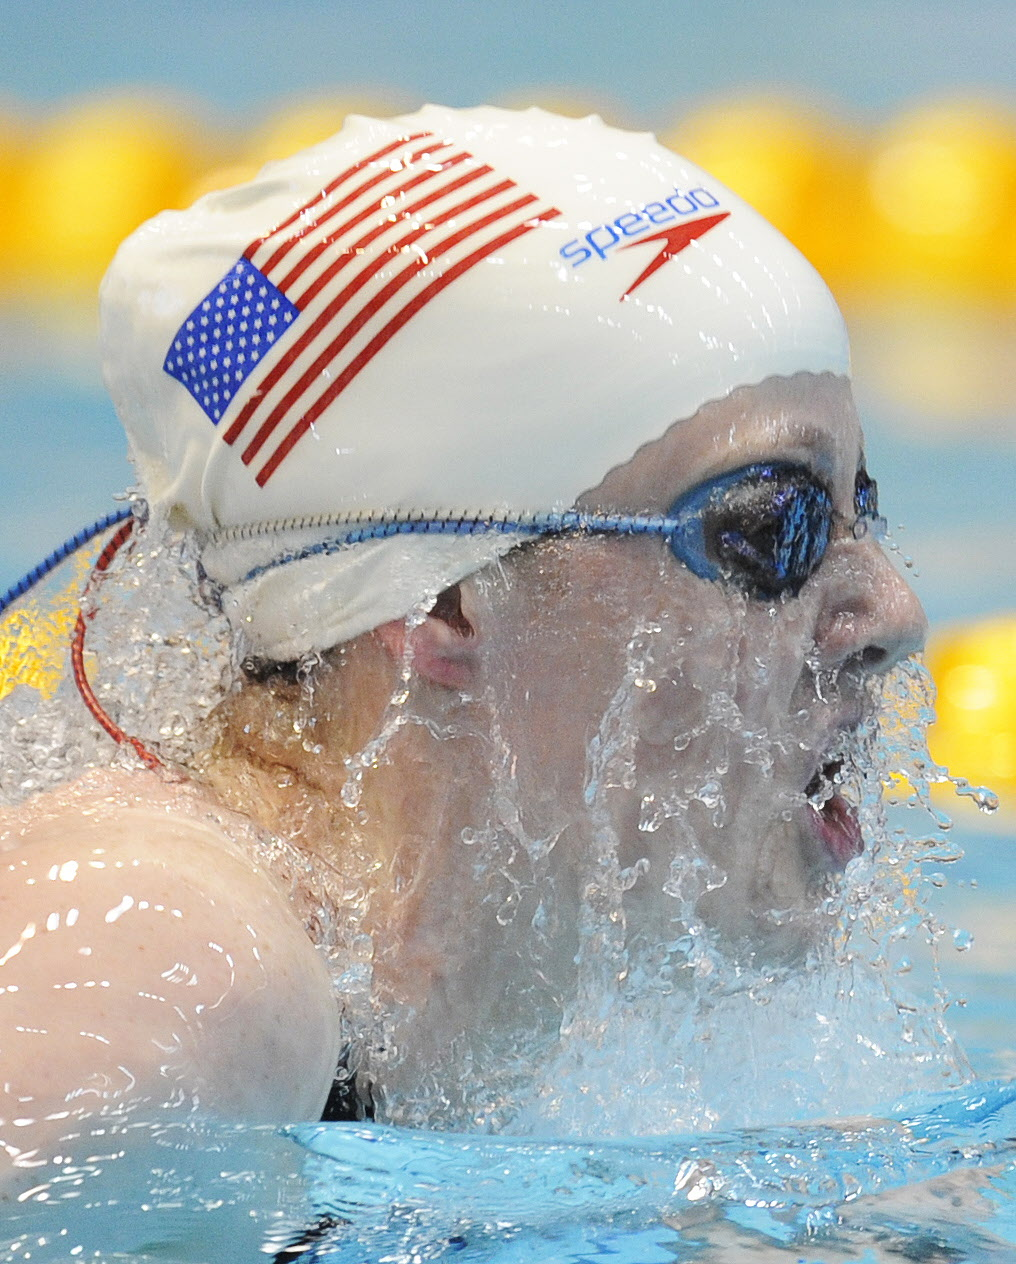 Melissa Franklin of the US competes in the heats of the Women's 200m Individual Medley at the FINA/ARENA Swimming World Cup 2009 in Berlin Nov. 14, 2009. (credit: JOHN MACDOUGALL/AFP/Getty Images)